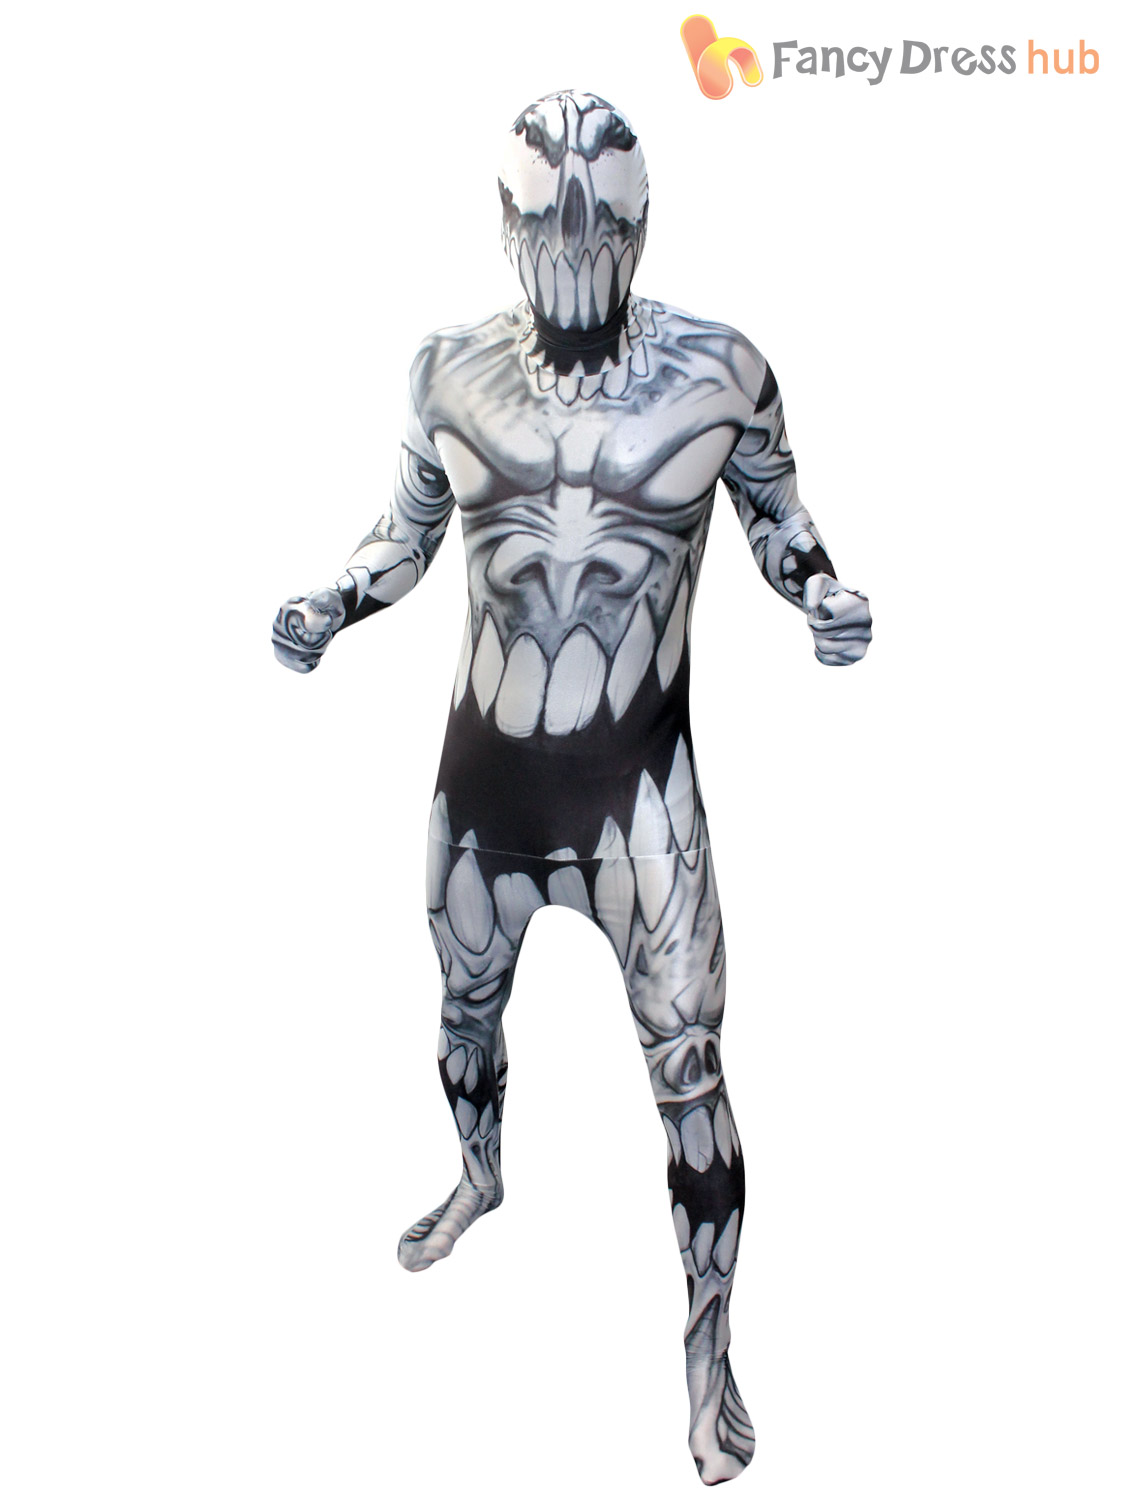 Adult-Morphsuit-Monster-Mens-Halloween-Robot-Zombie-Fancy-Dress-Costumes-Party